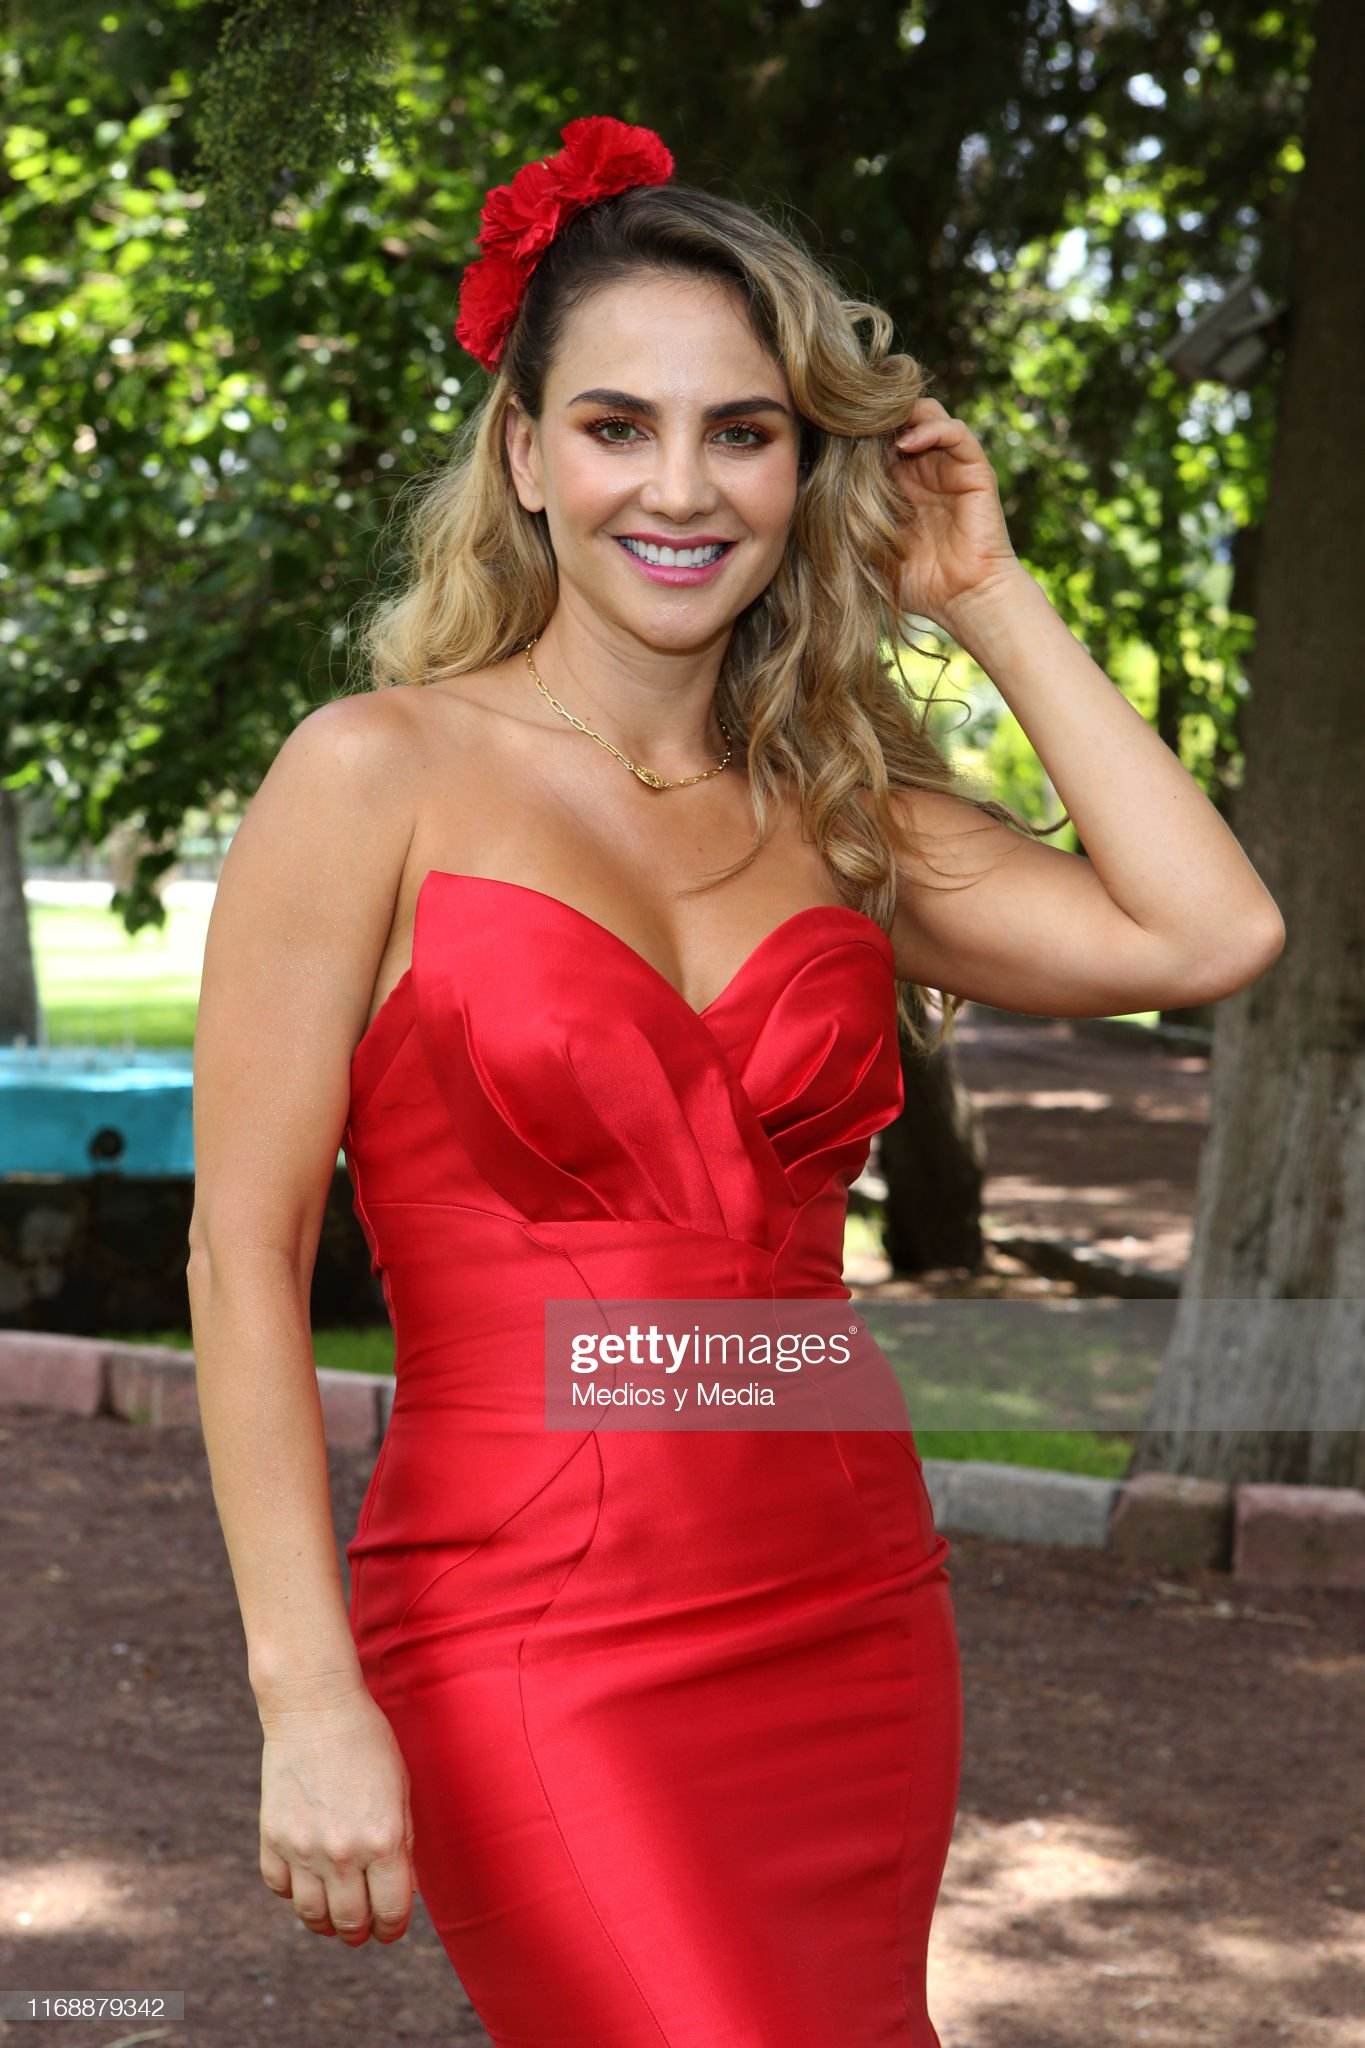 https://media.gettyimages.com/photos/ximena-cordoba-poses-for-photos-after-the-press-conference-for-the-picture-id1168879342?s=2048x2048